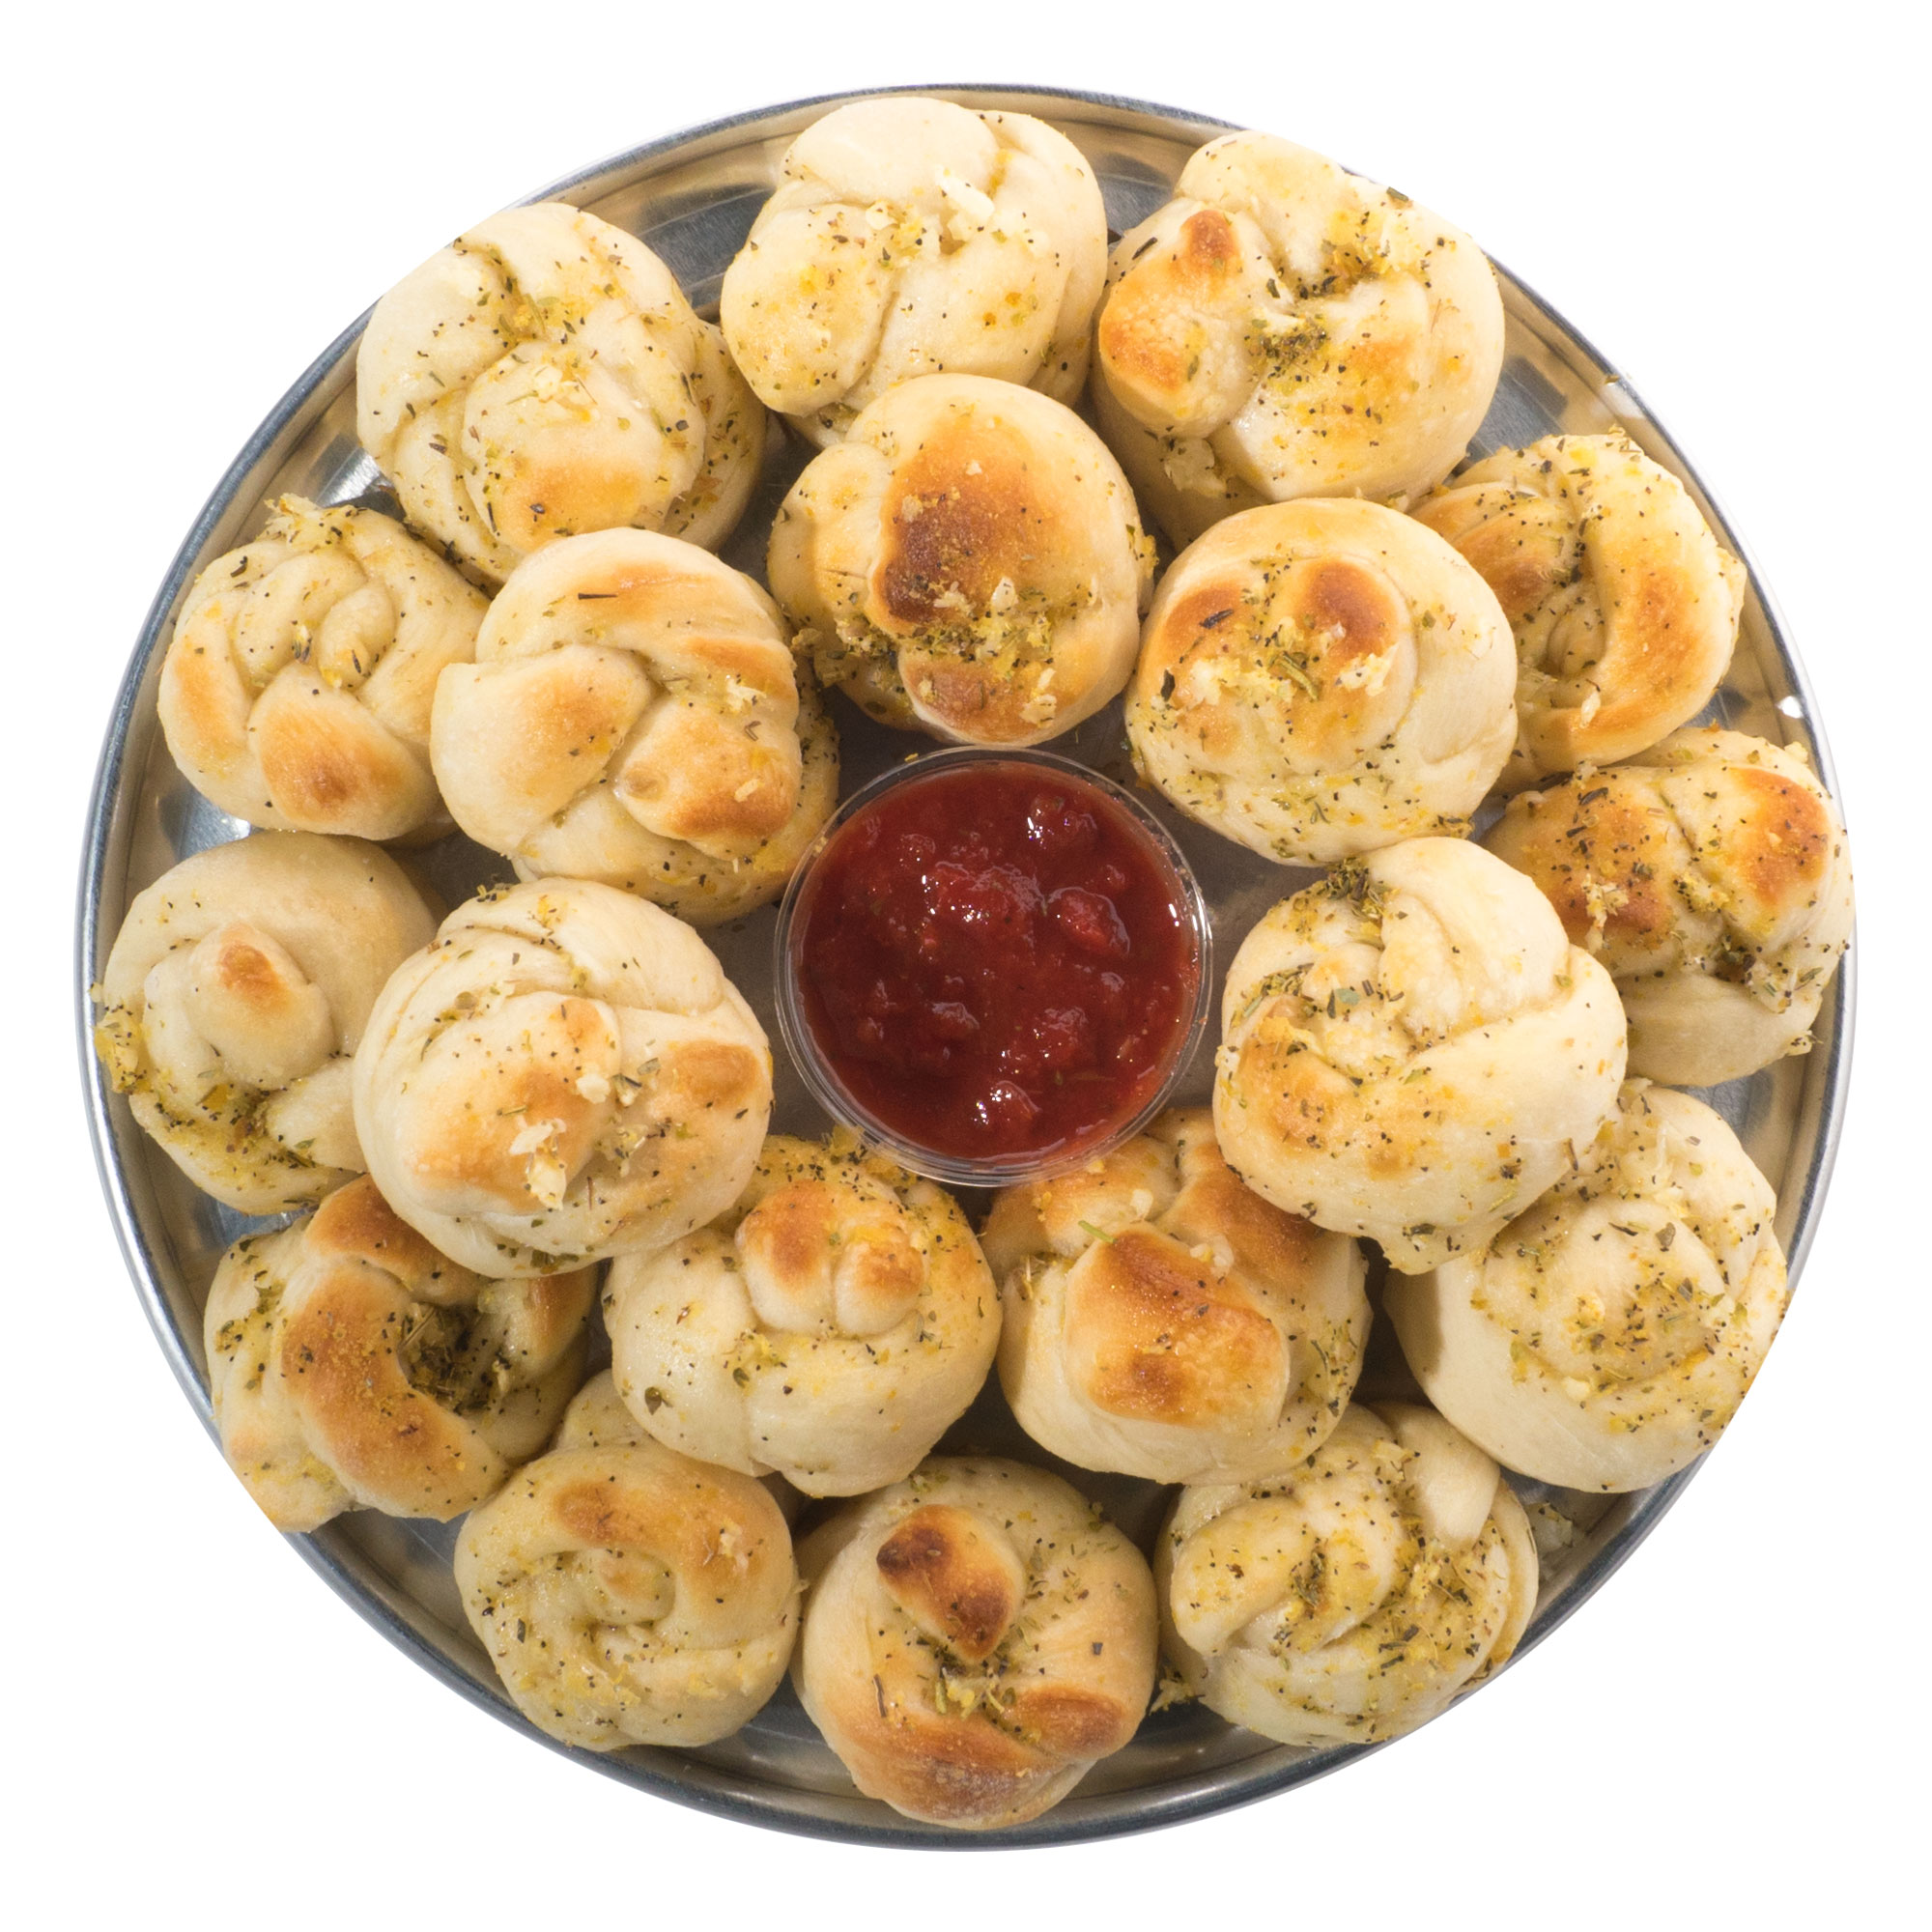 Sizzle-Pie_Garlic-Knots_1.jpg